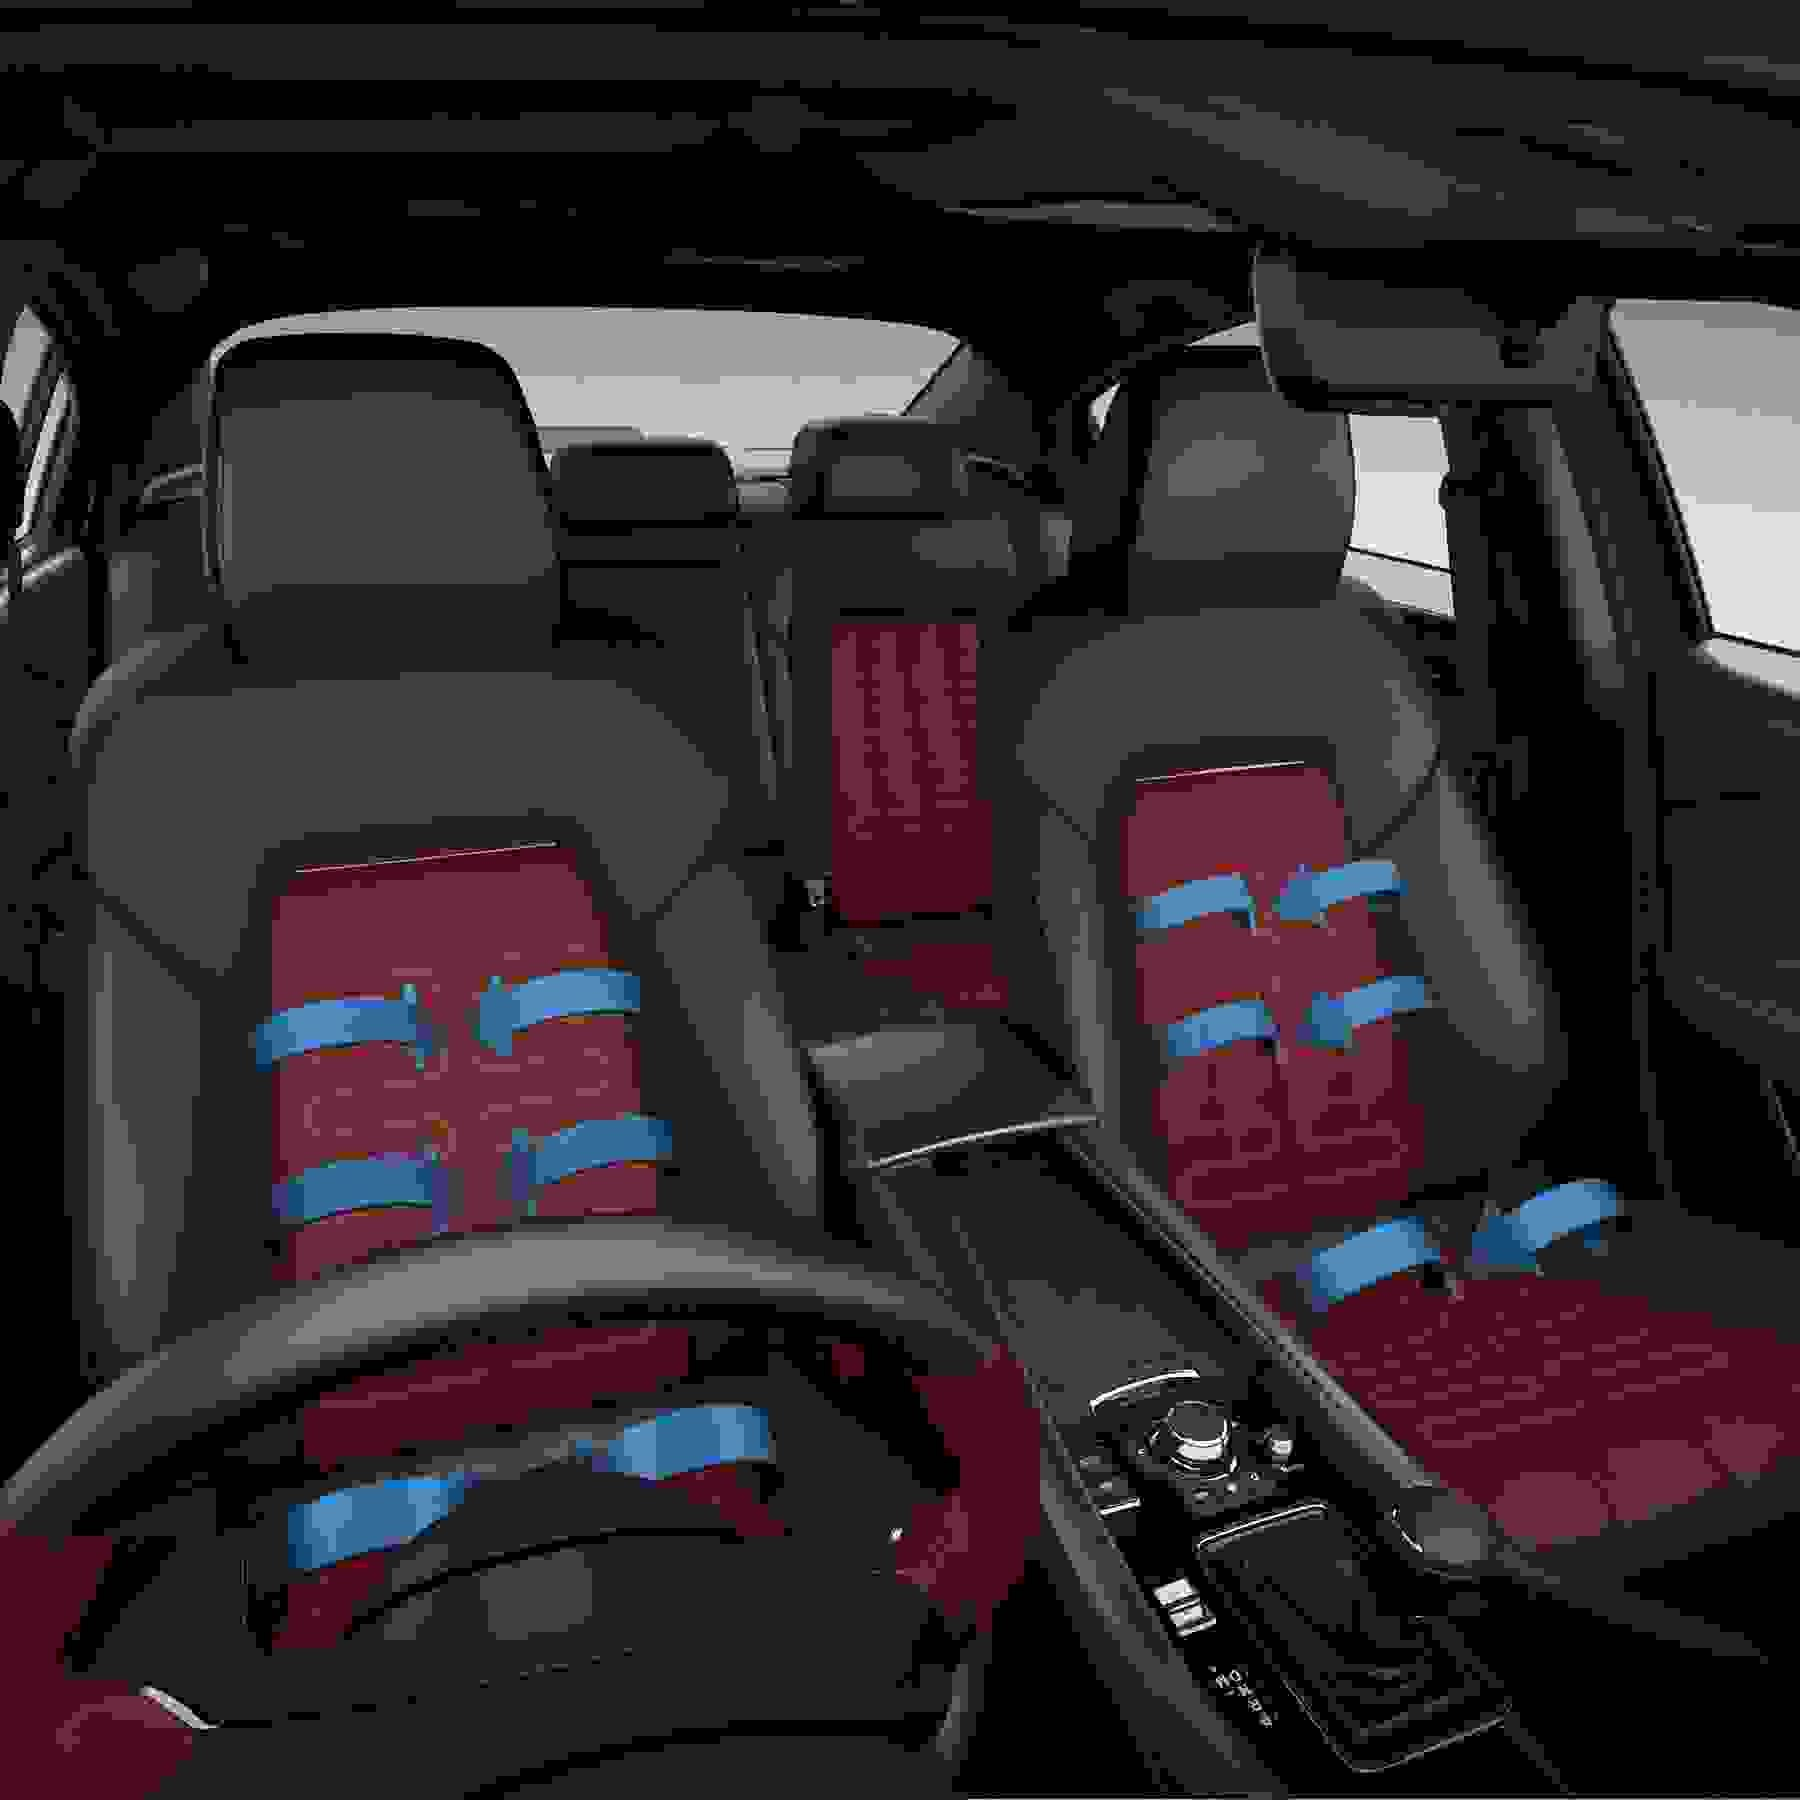 Heated and Ventilated Seats, Heated Steering Wheel